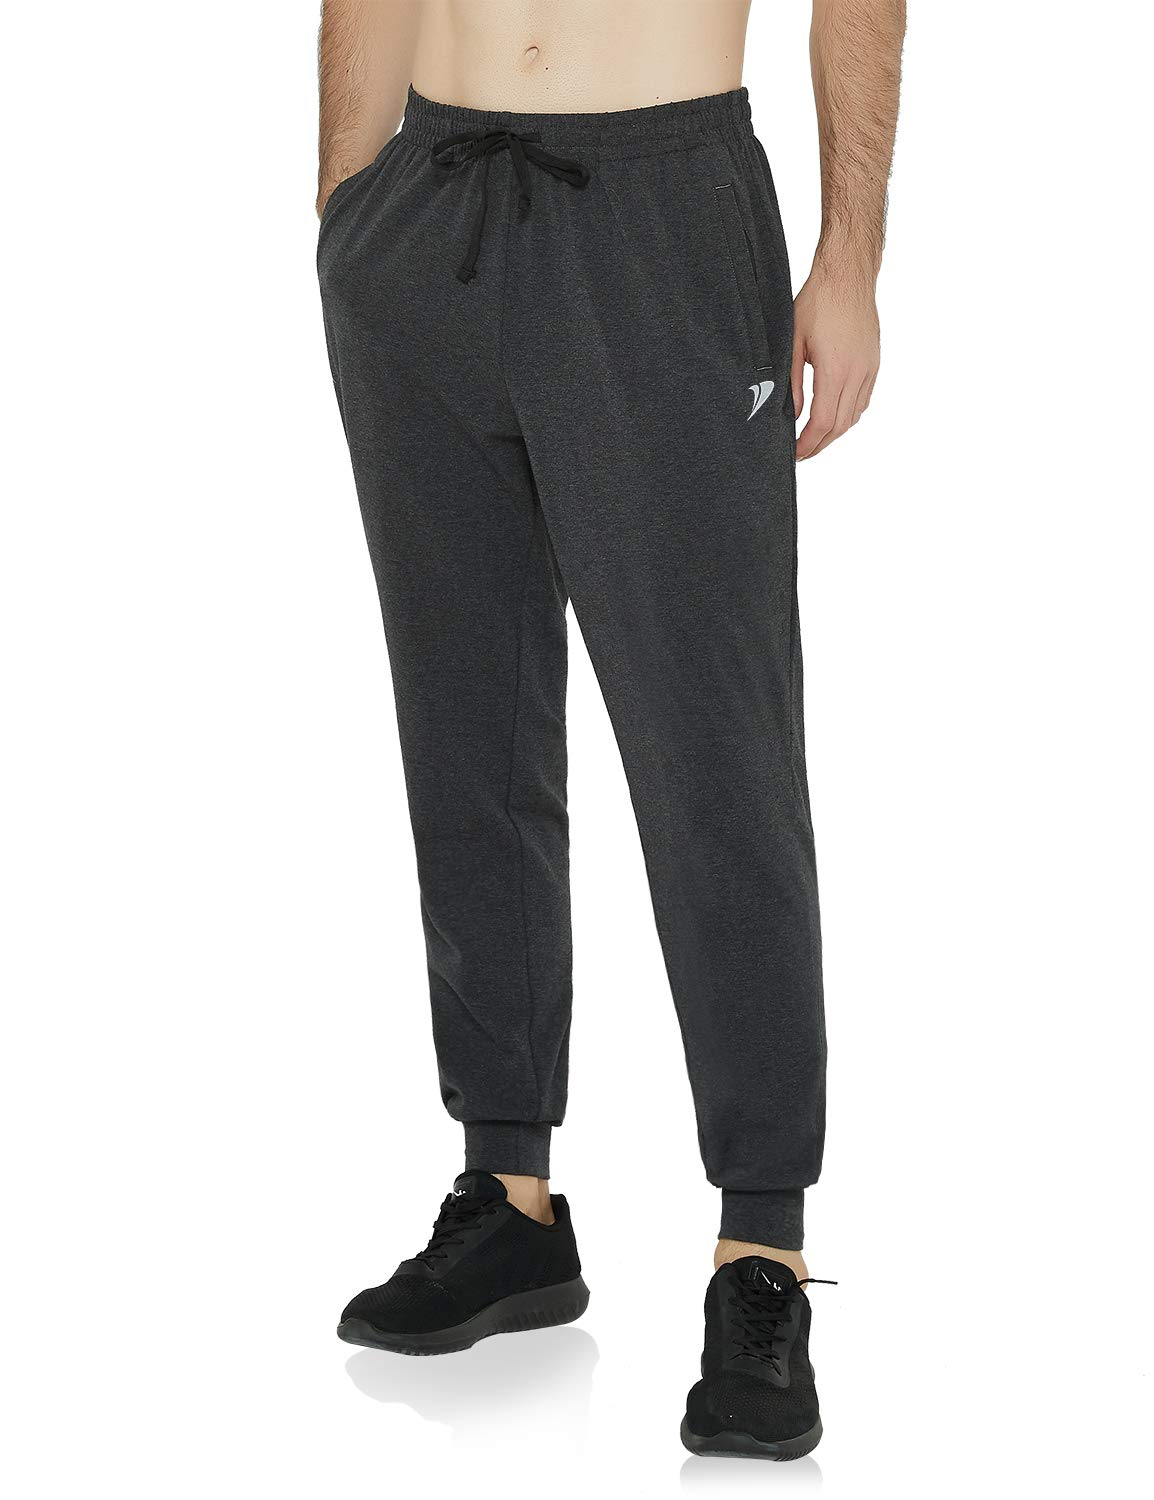 DEMOZU Men's Tapered Athletic Running Joggers Track Pants Training Workout Gym Sweatpants with Zipper Pockets